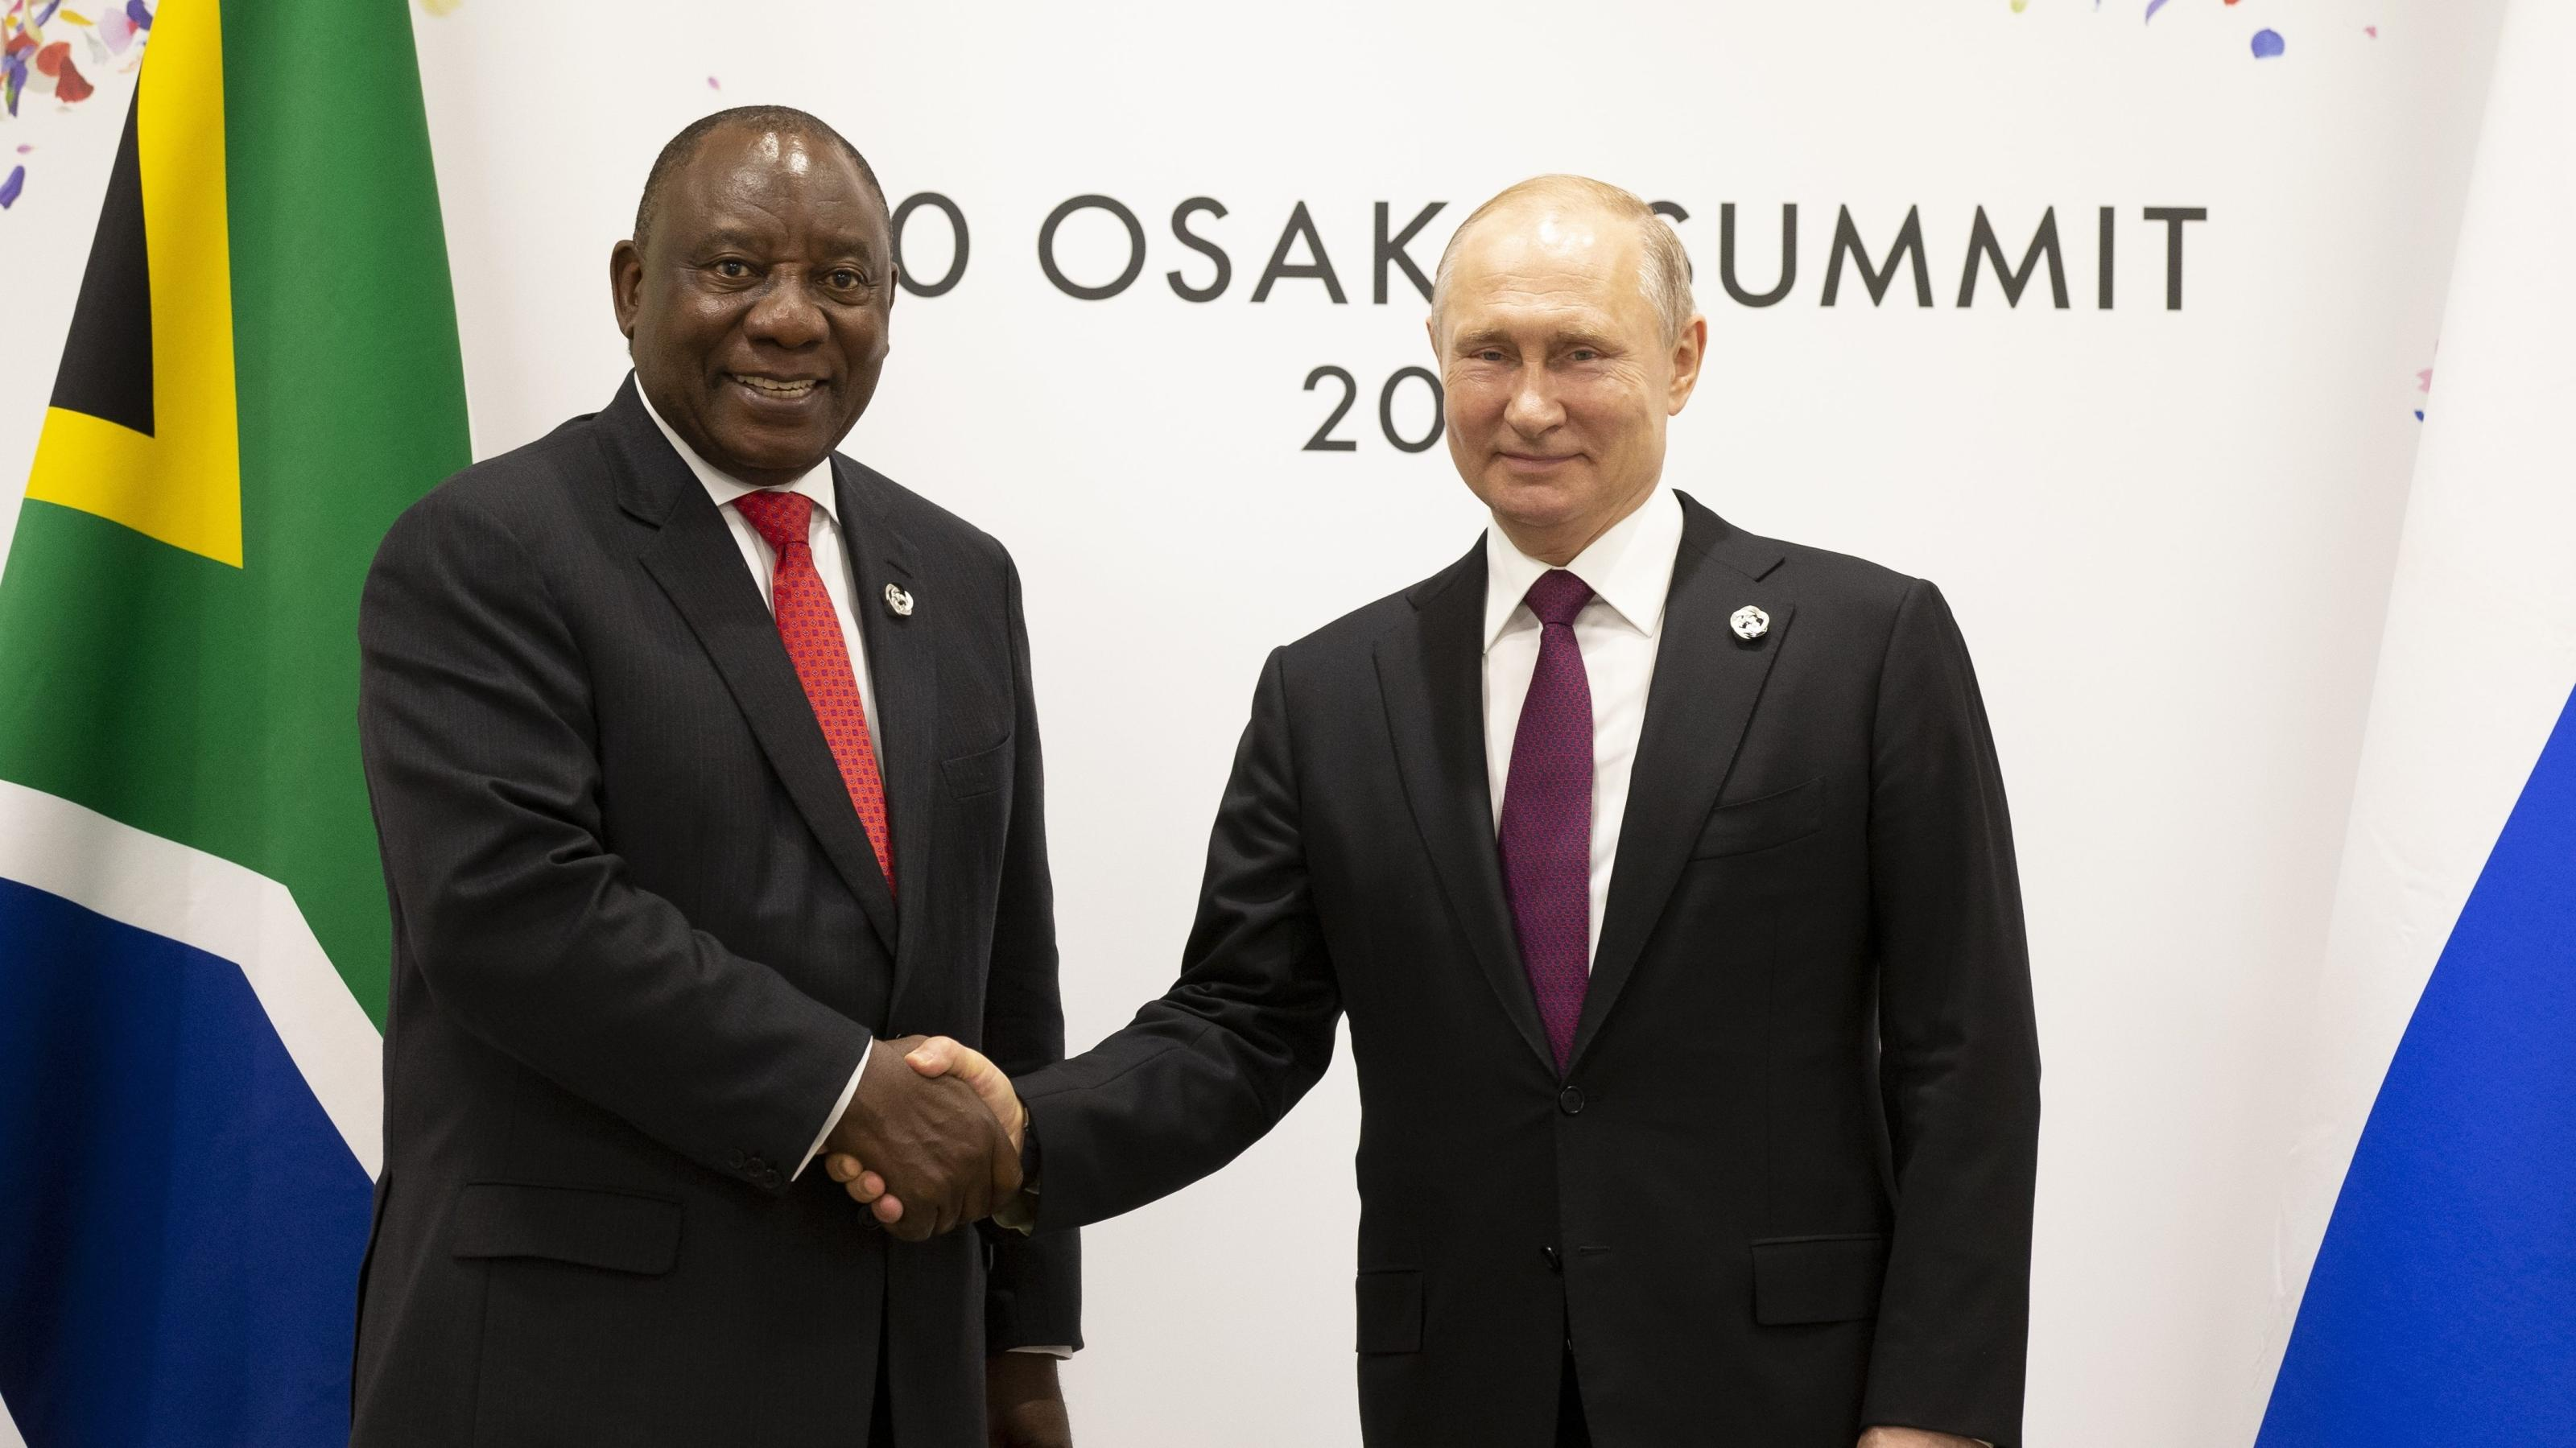 Russia-Africa summit marks growing influence with presidents